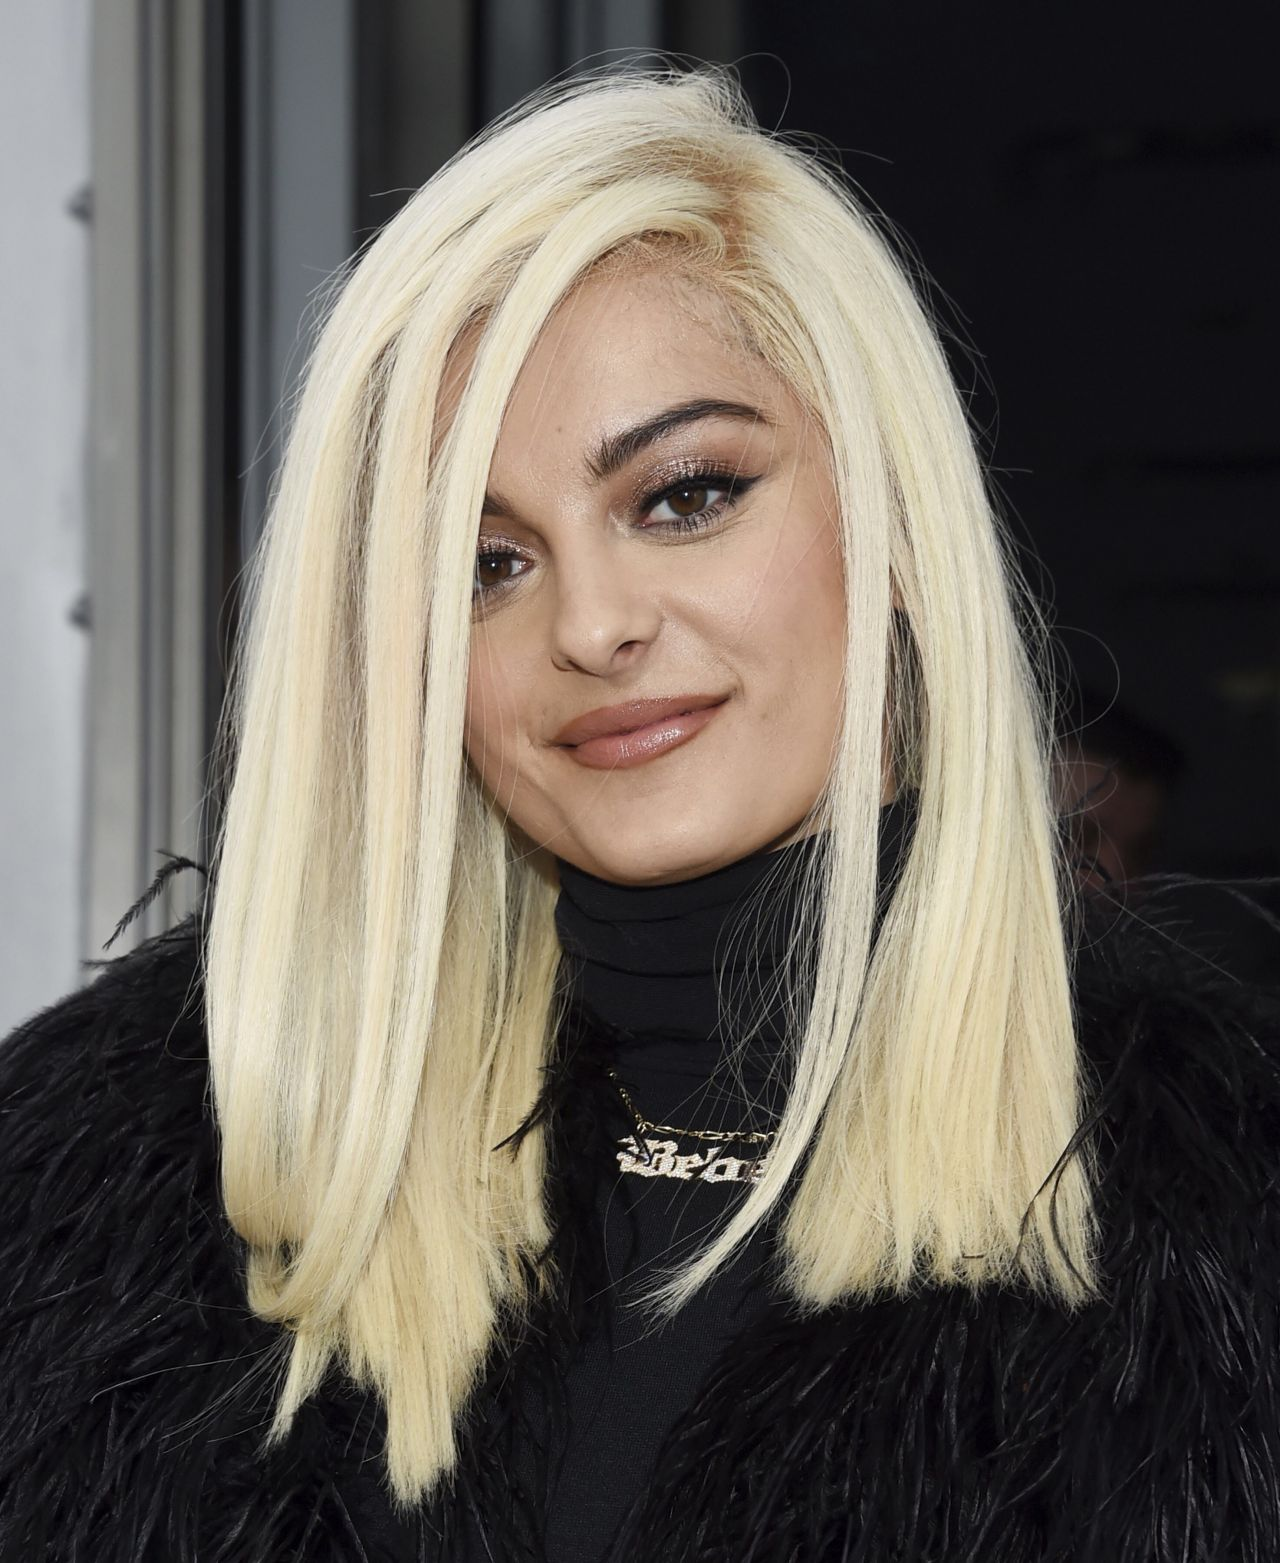 Bebe Rexha: Bebe Rexha At The Empire State Building In NYC